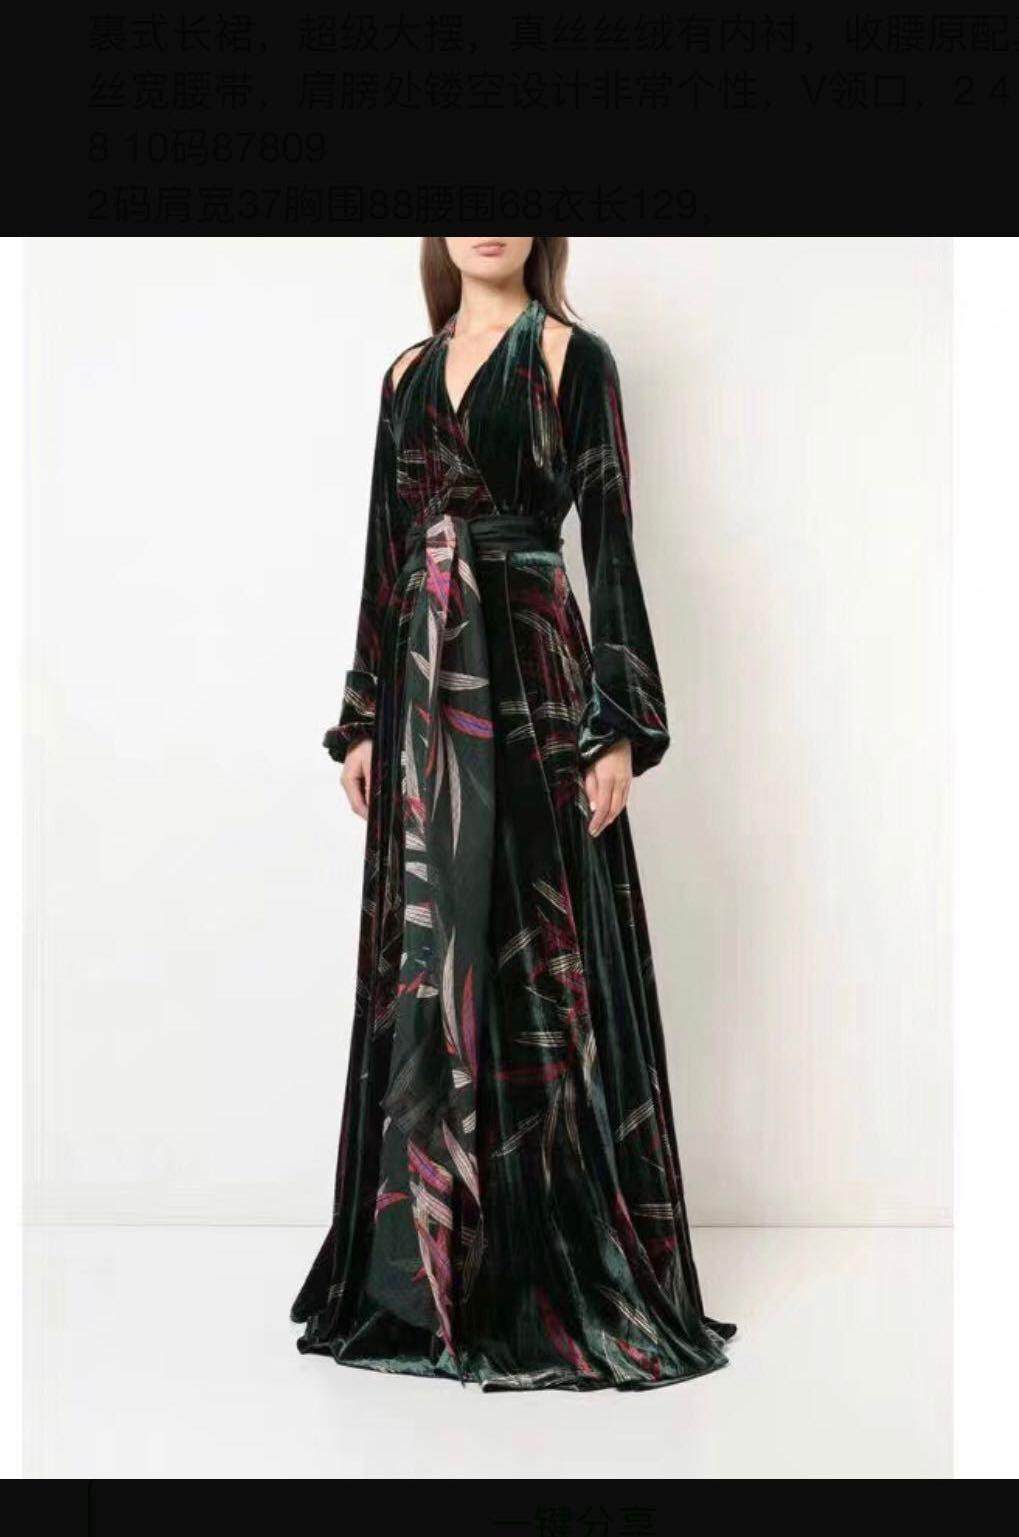 Bnwt Authentic Diane Von Furstenberg Velvet Cut Out Silk Dress Gown Women S Fashion Clothes Dresses Skirts On Carousell